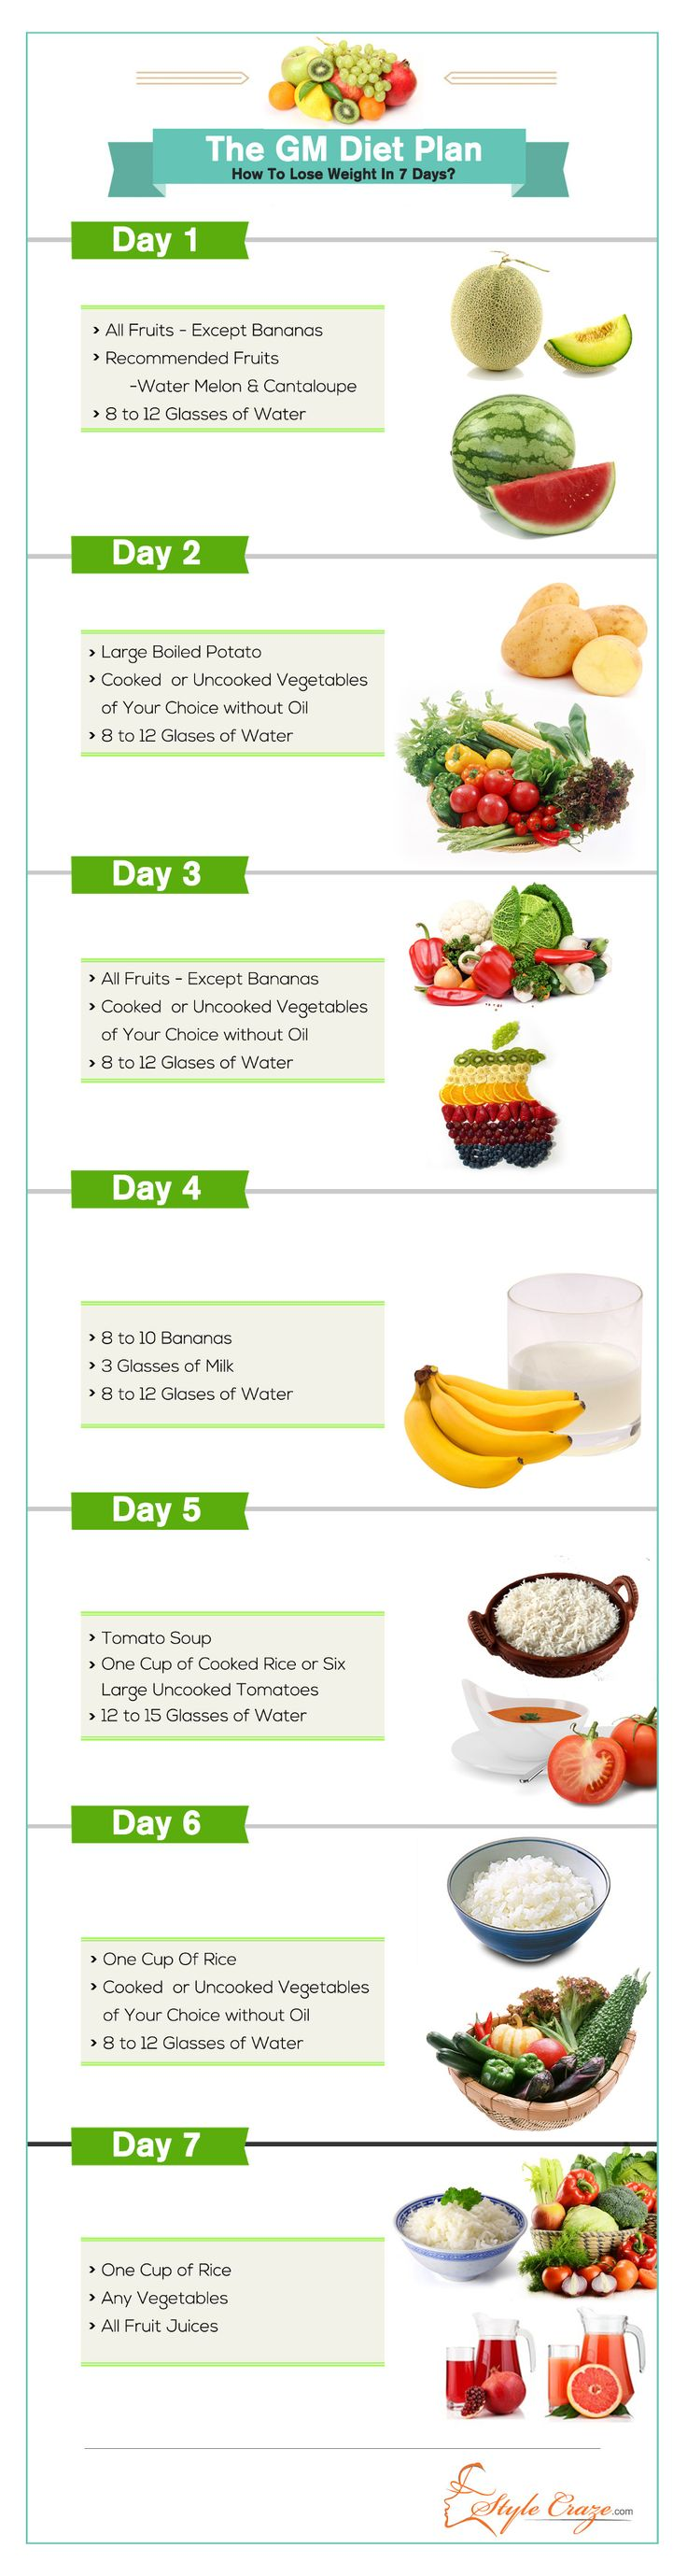 der general motors diet plan dreamteamfitness